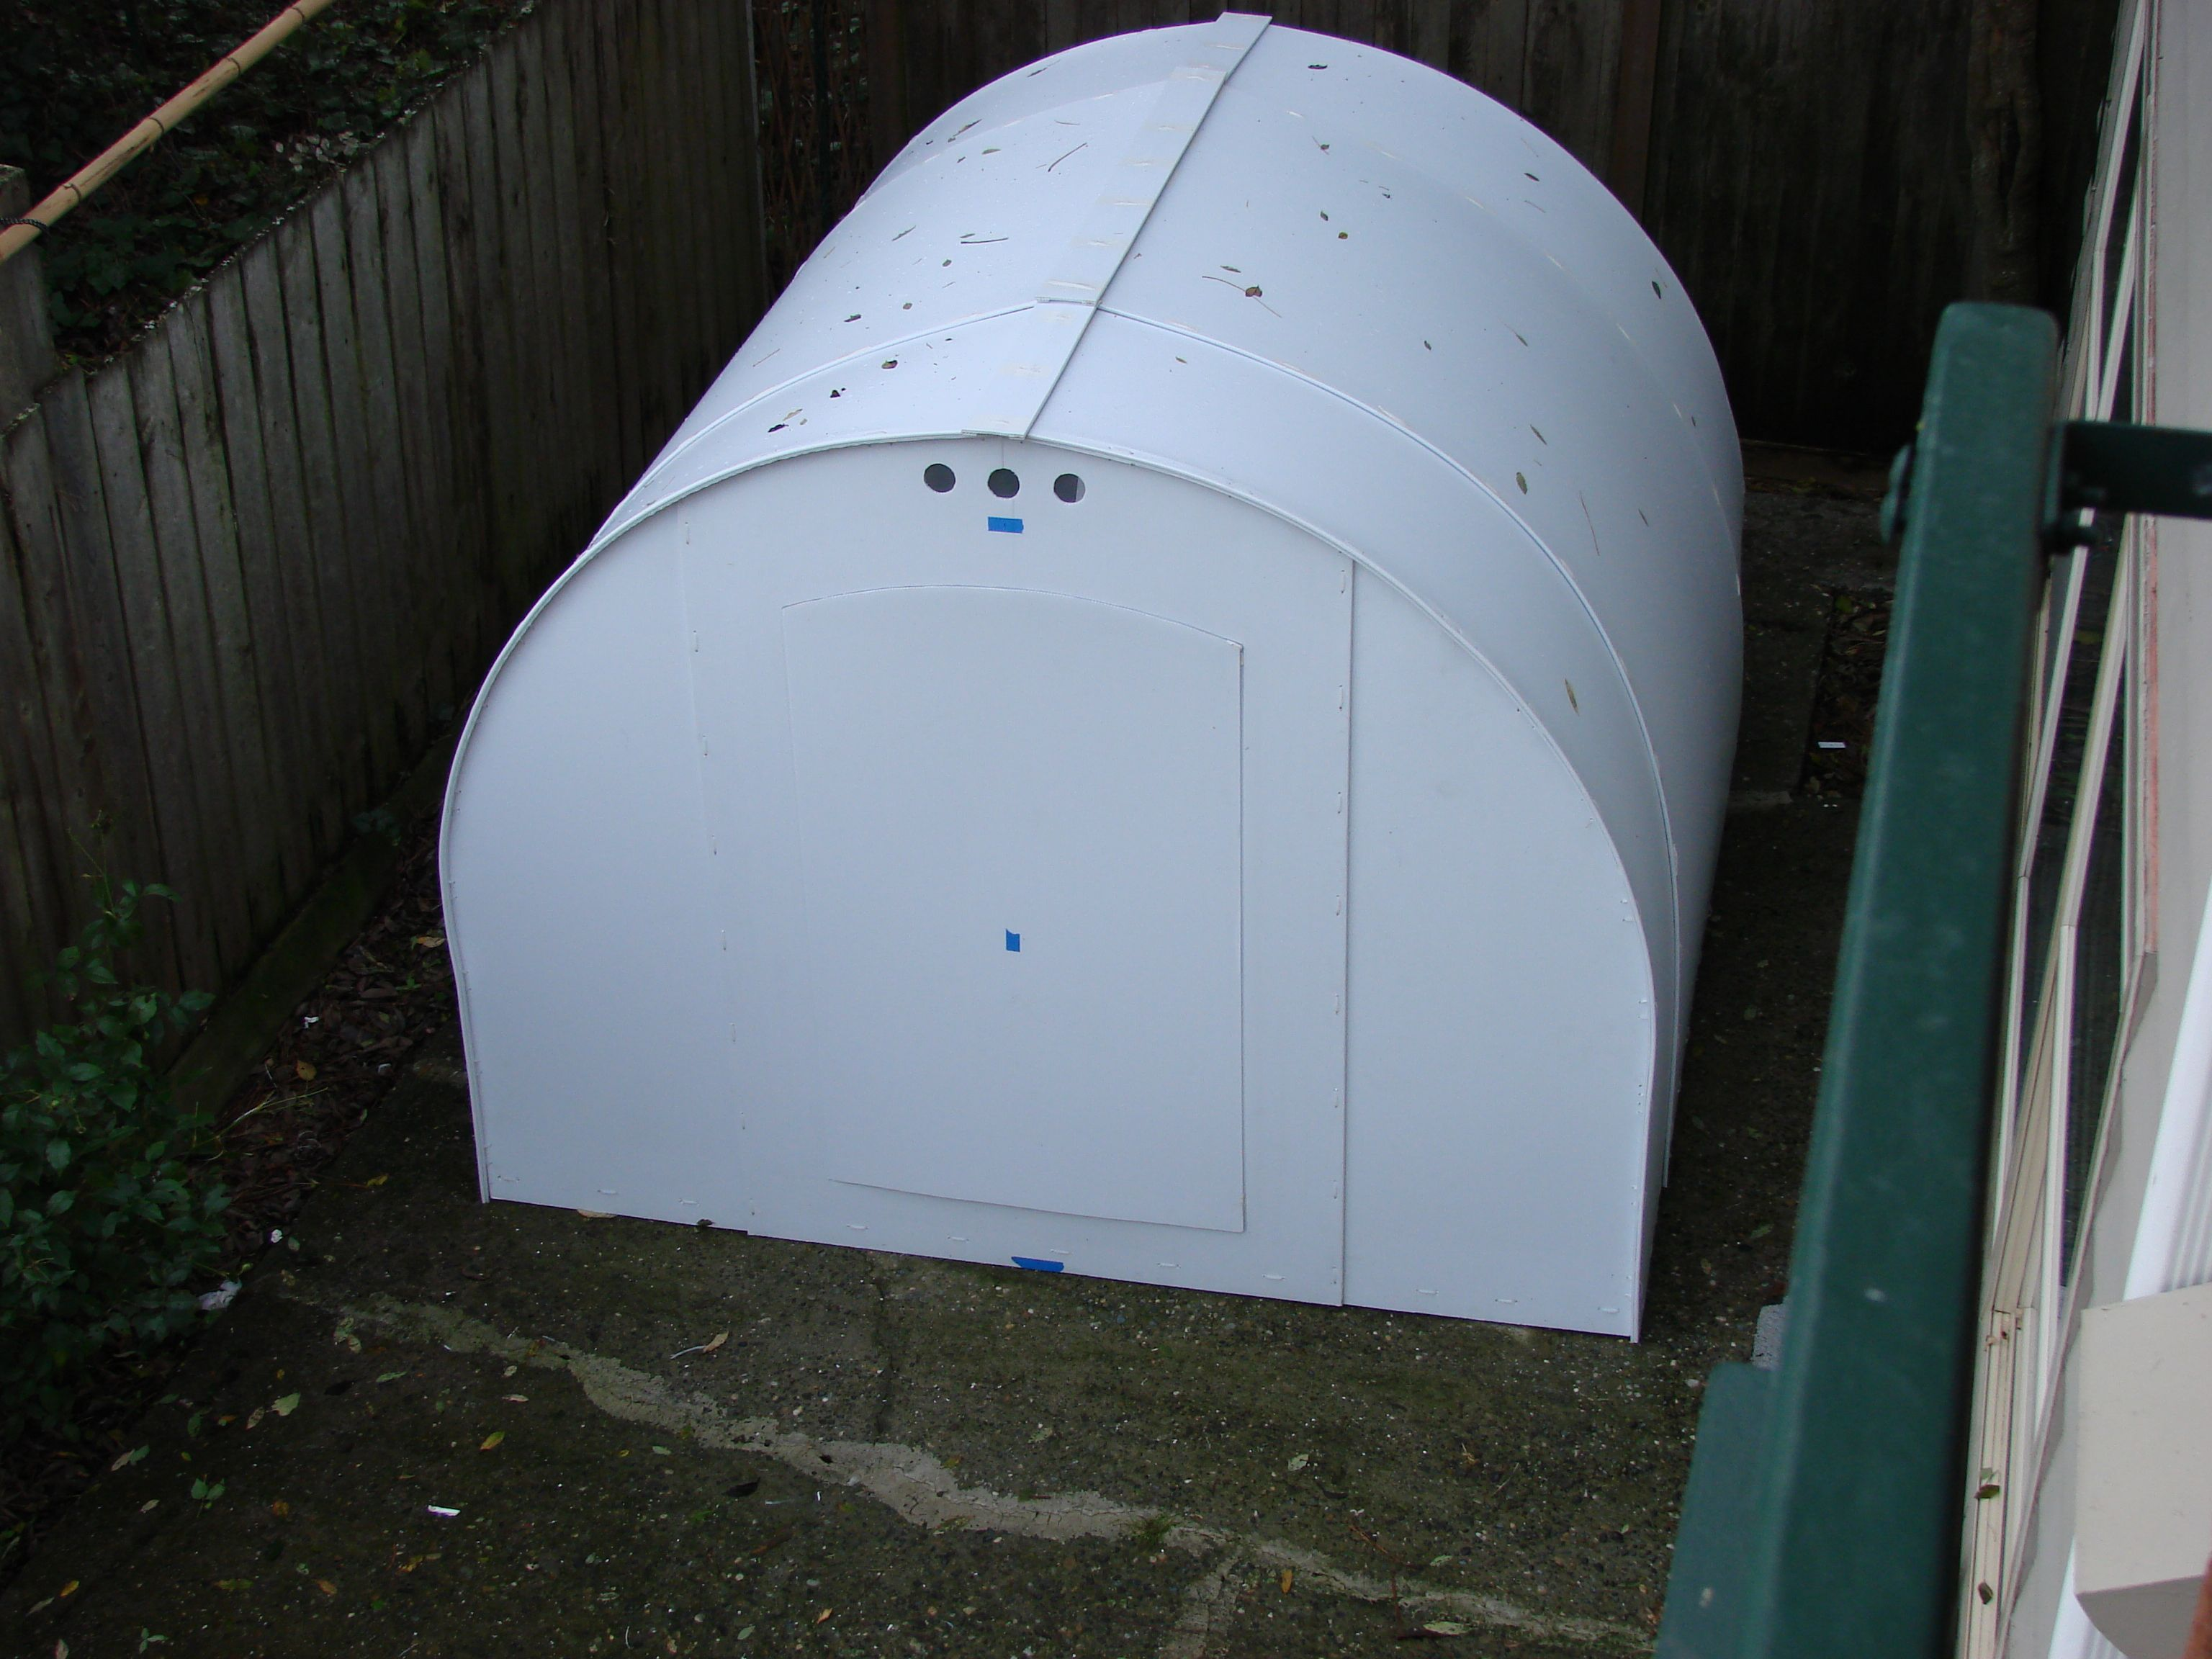 Large Coroplast Shelter For The Homeless Tiny Mobile House Shelter Recycled Crafts